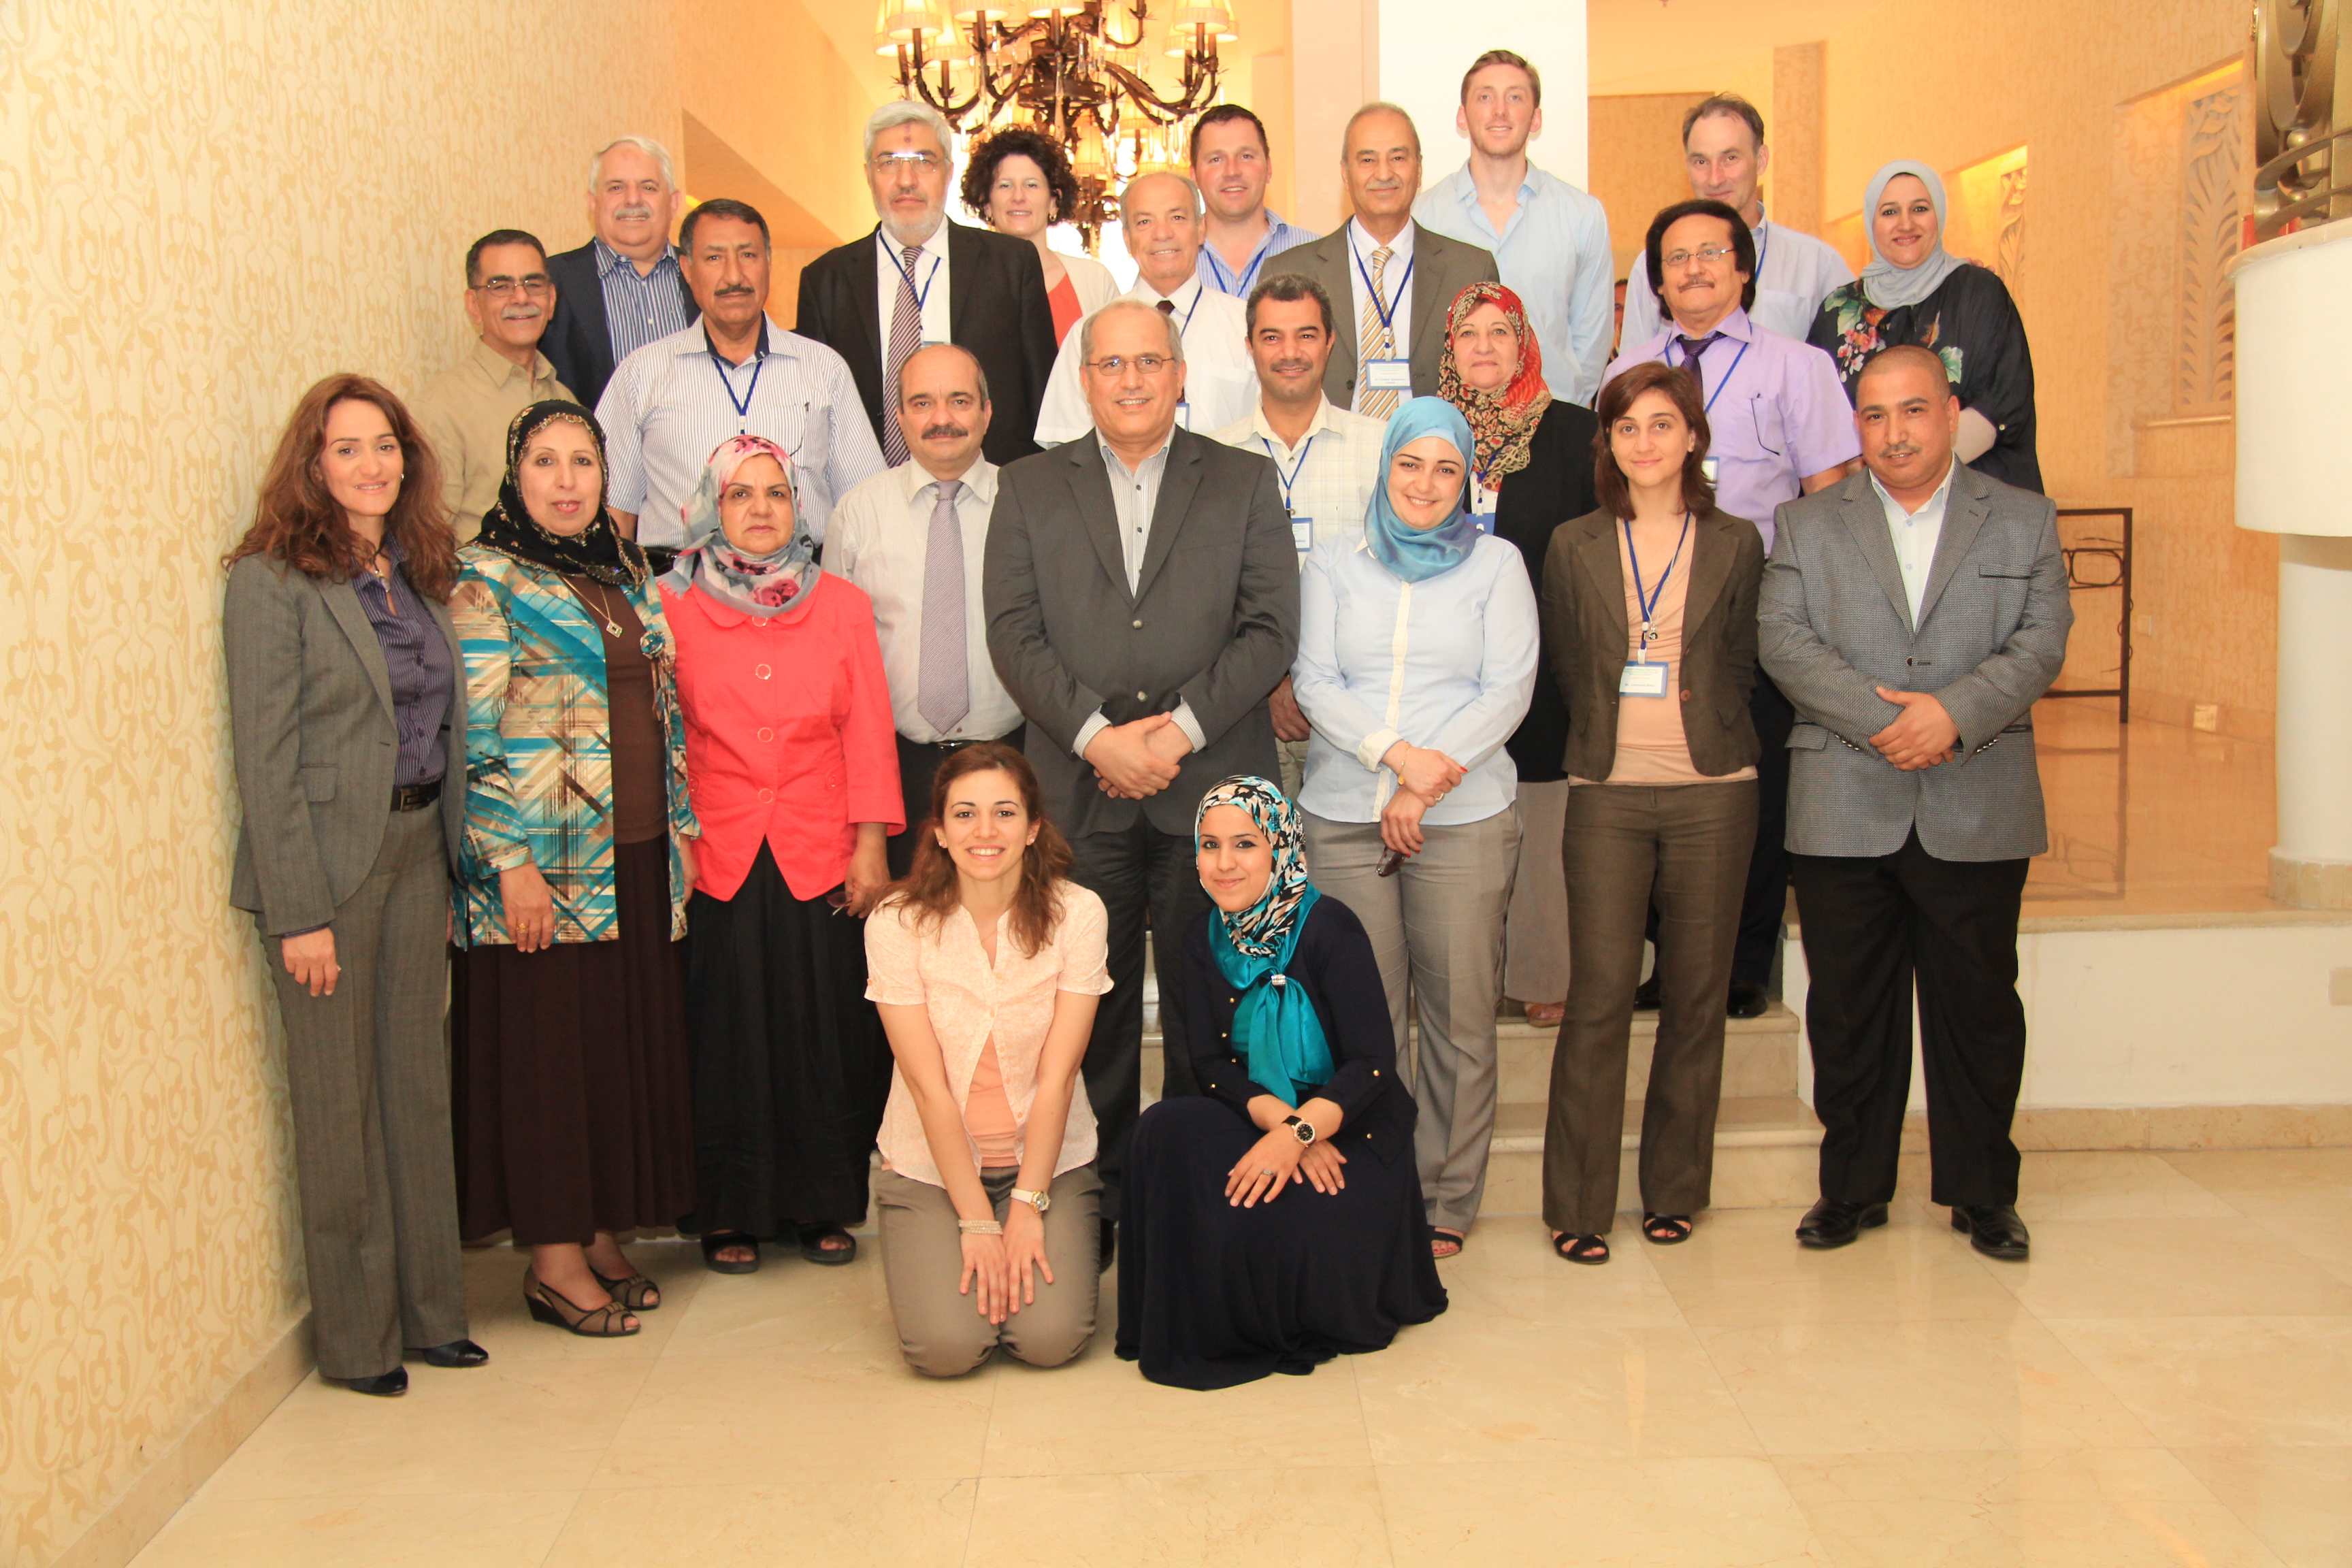 Iraq's National Biodiversity Strategy Action Plan team - Amman, Jordan - July 2013